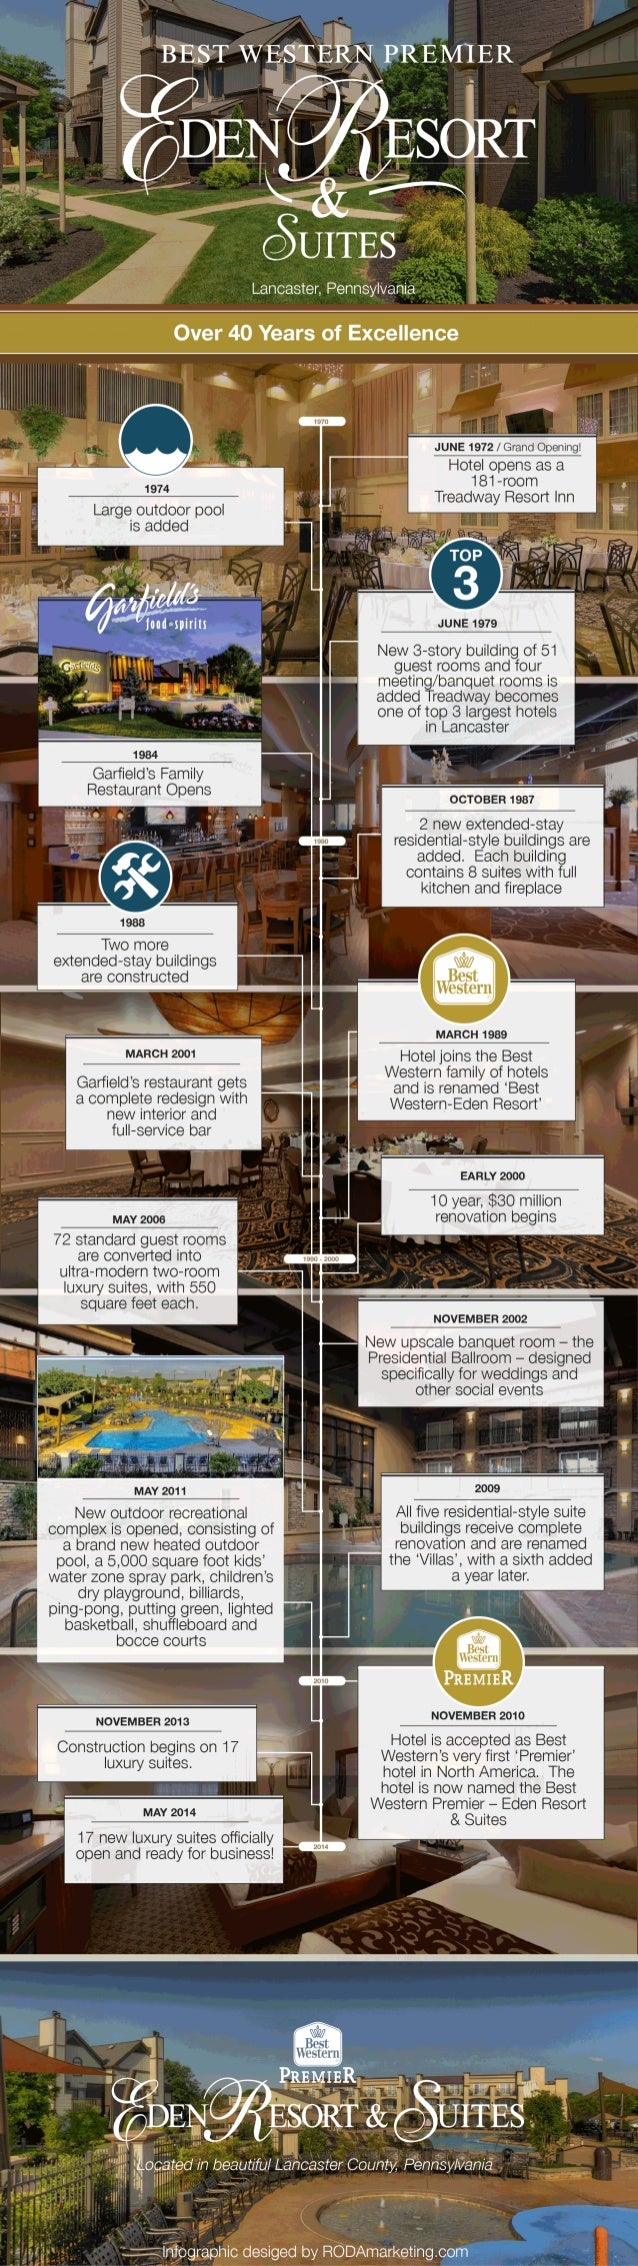 The Eden Resort & Suites Celebrates 40 Years of Excellence